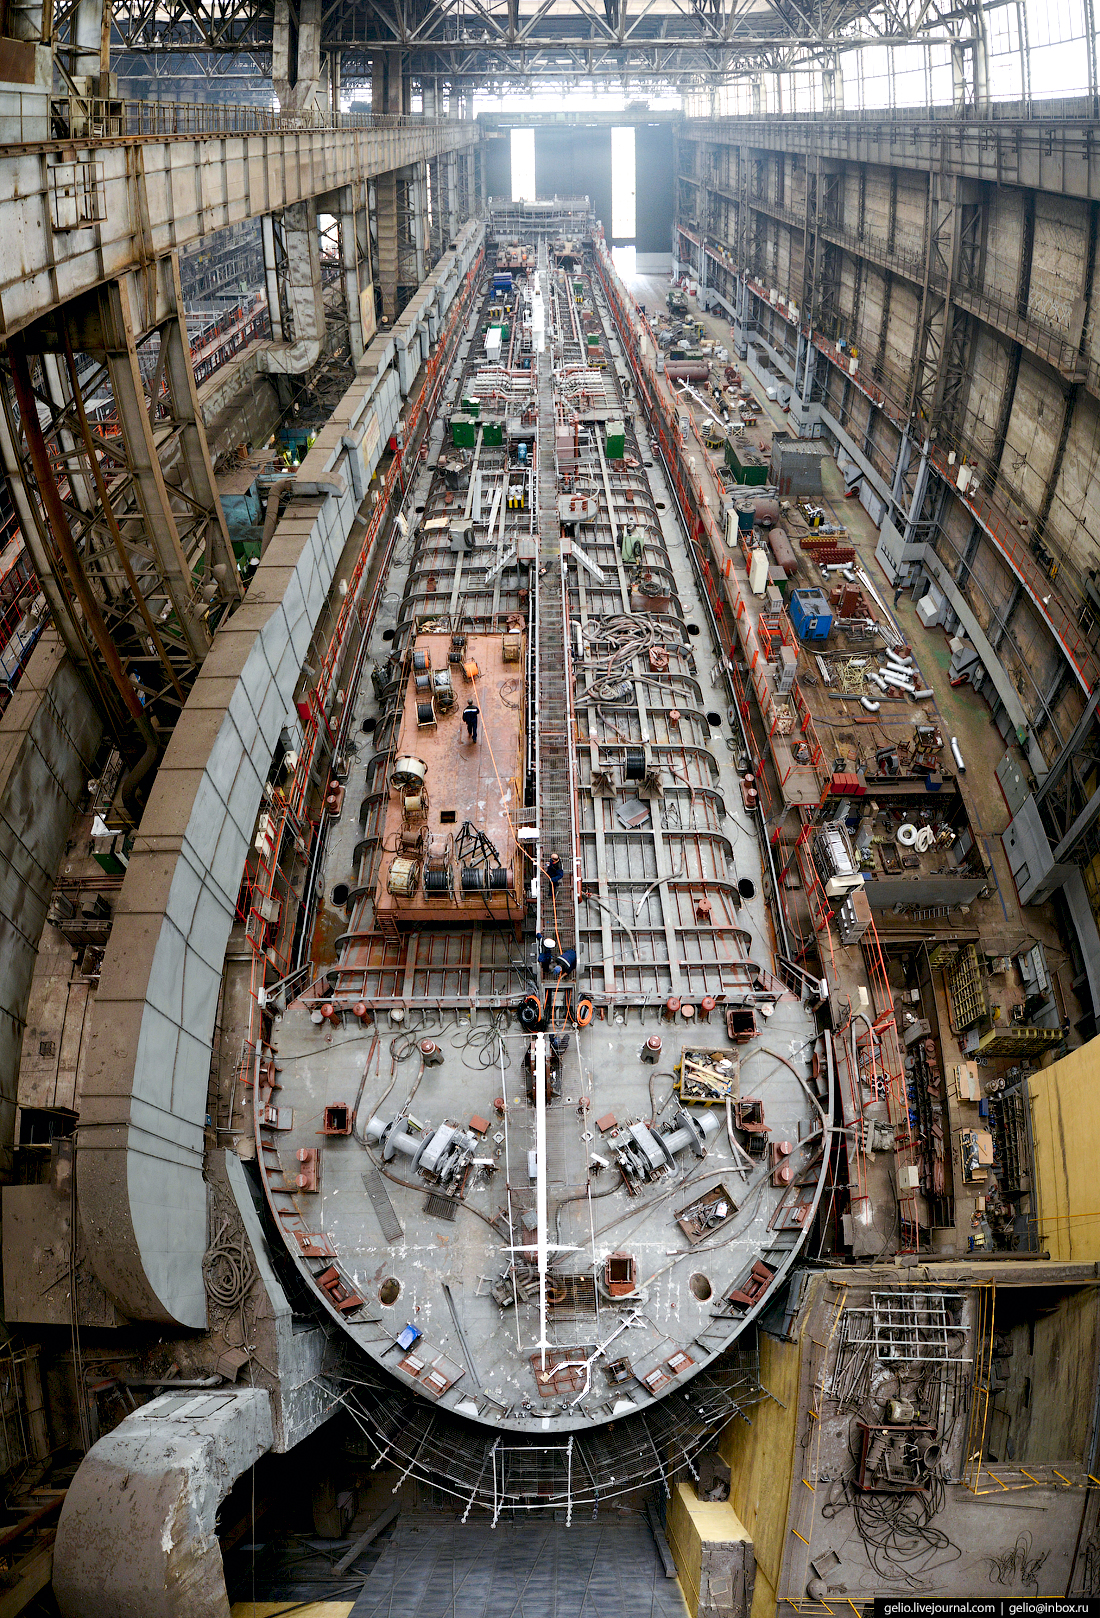 Russian Naval Shipbuilding Industry: News - Page 15 0_93363_18fa285d_orig